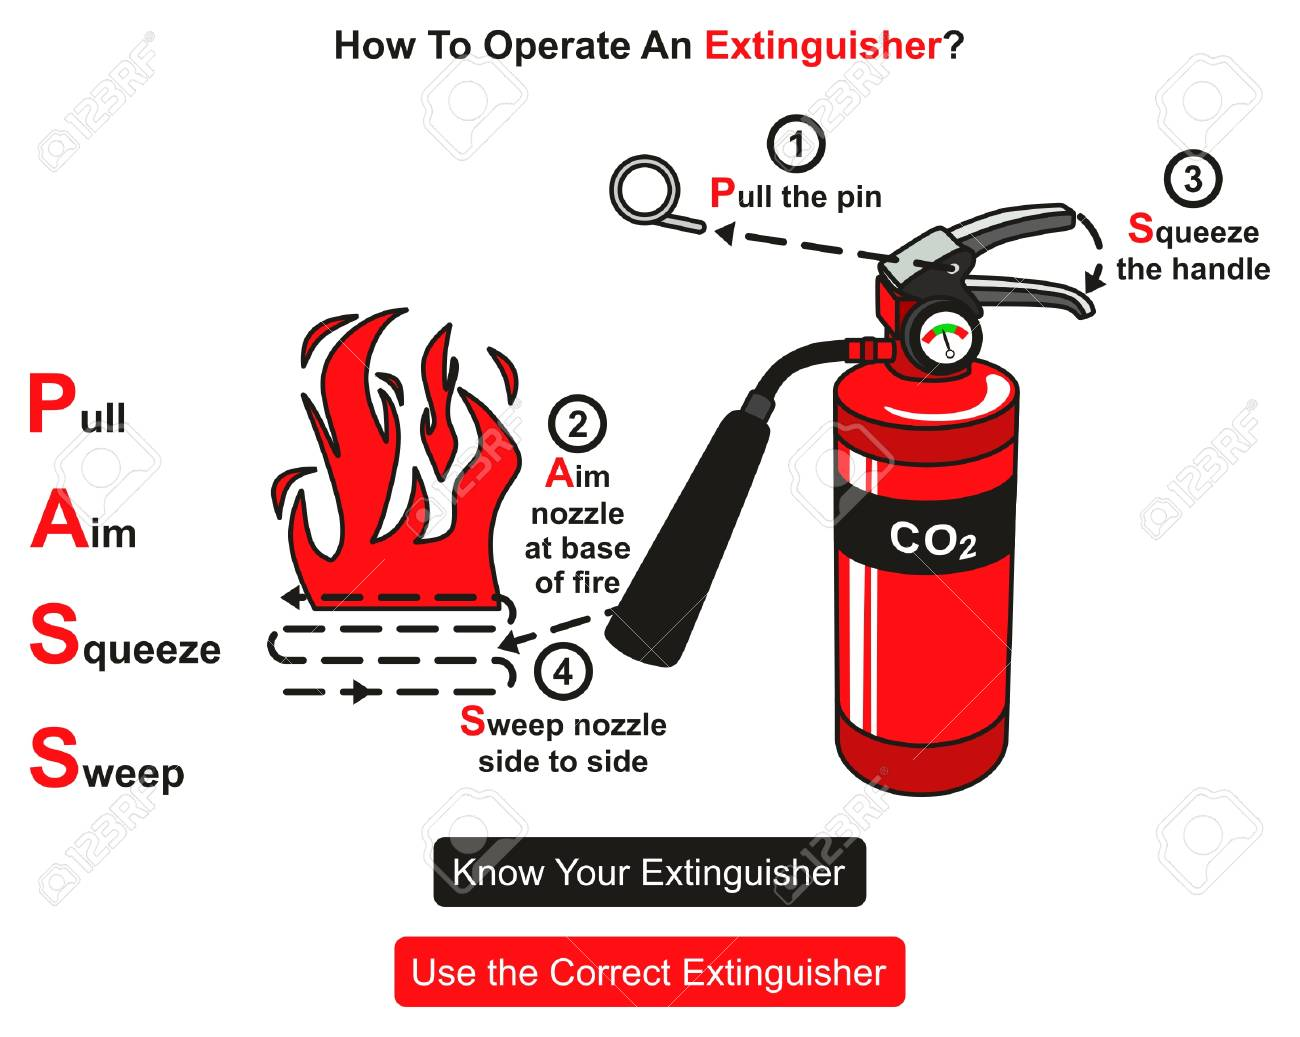 How to Operate An Extinguisher infographic diagram showing instructions step by step how to use it for fire safety concept poster and event and for education - 87964893